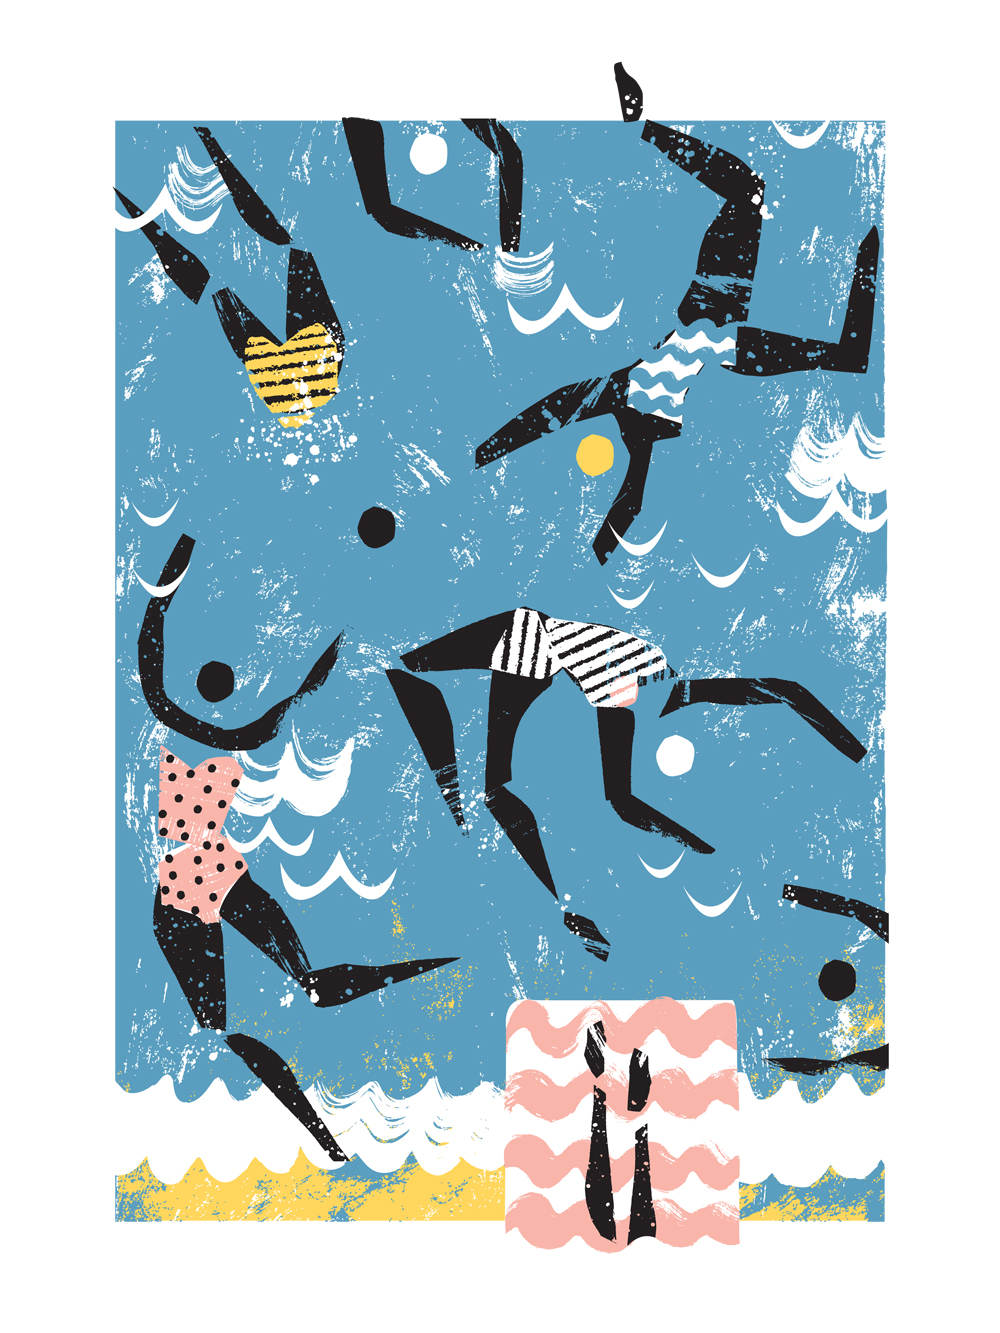 Sea Swimmers. 30 x 40 cm giclee print. Edition of 50. £40